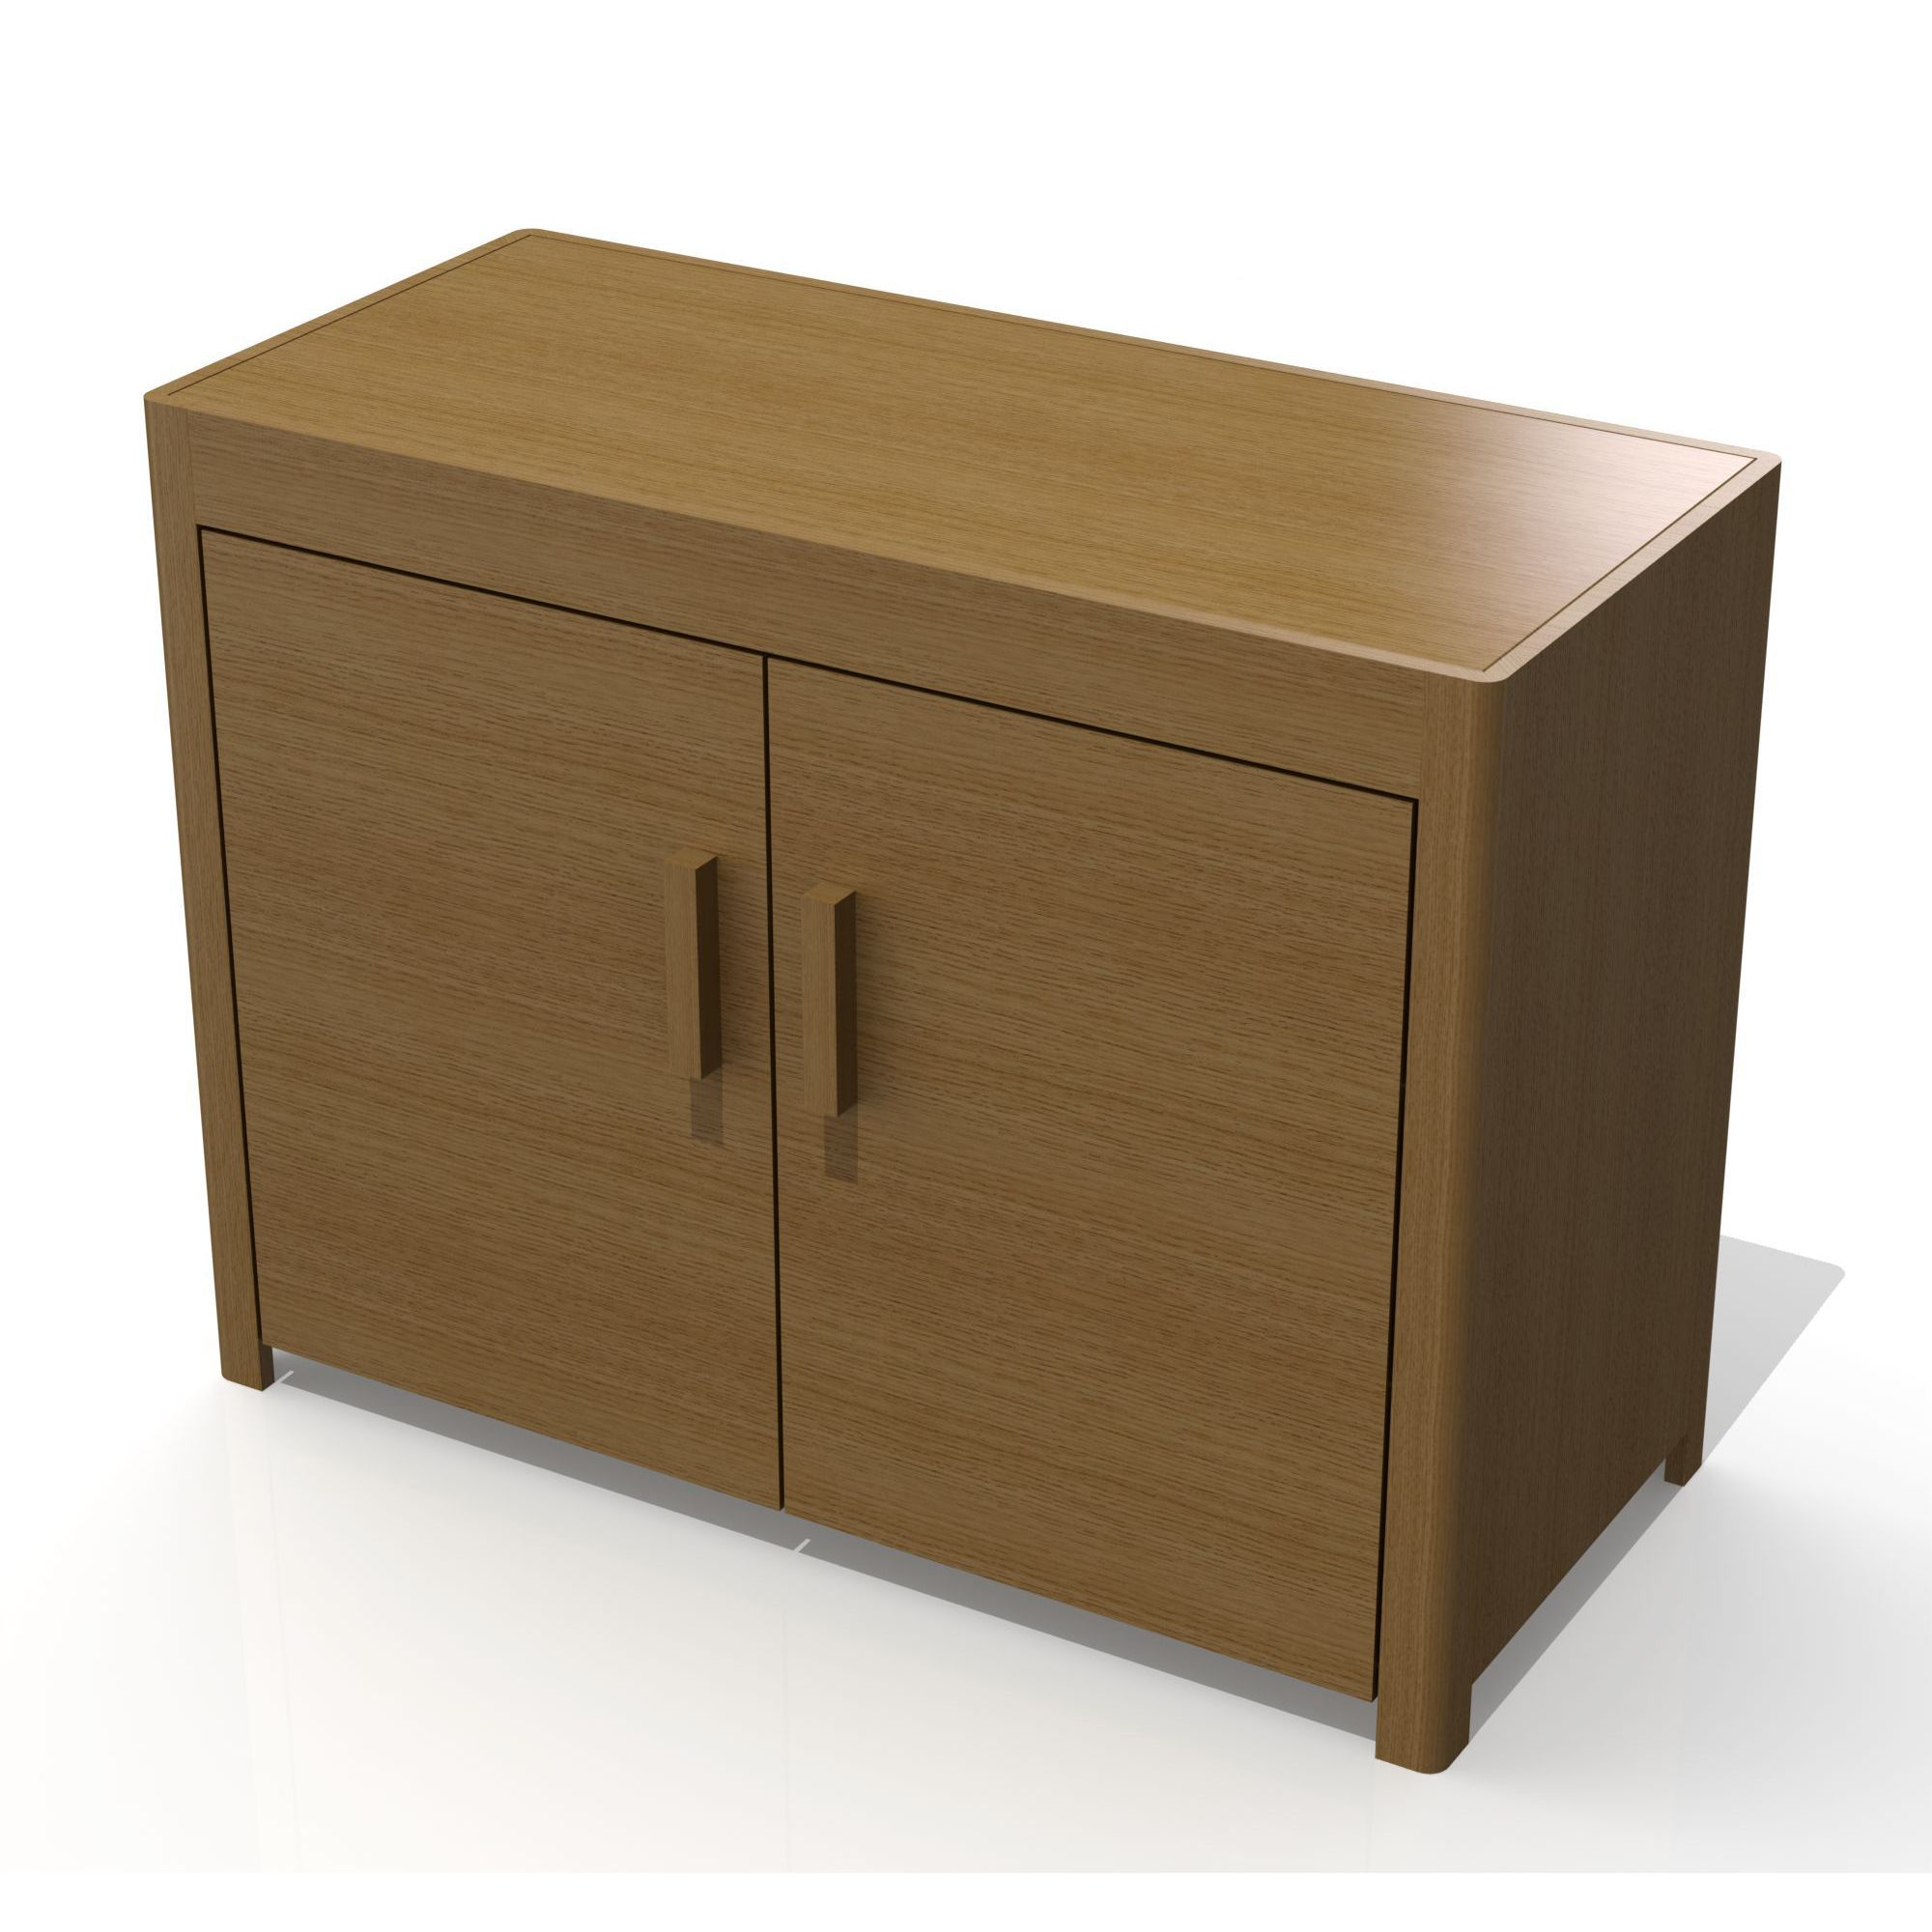 Ashcraft Banbury Sideboard - Oak at Tesco Direct